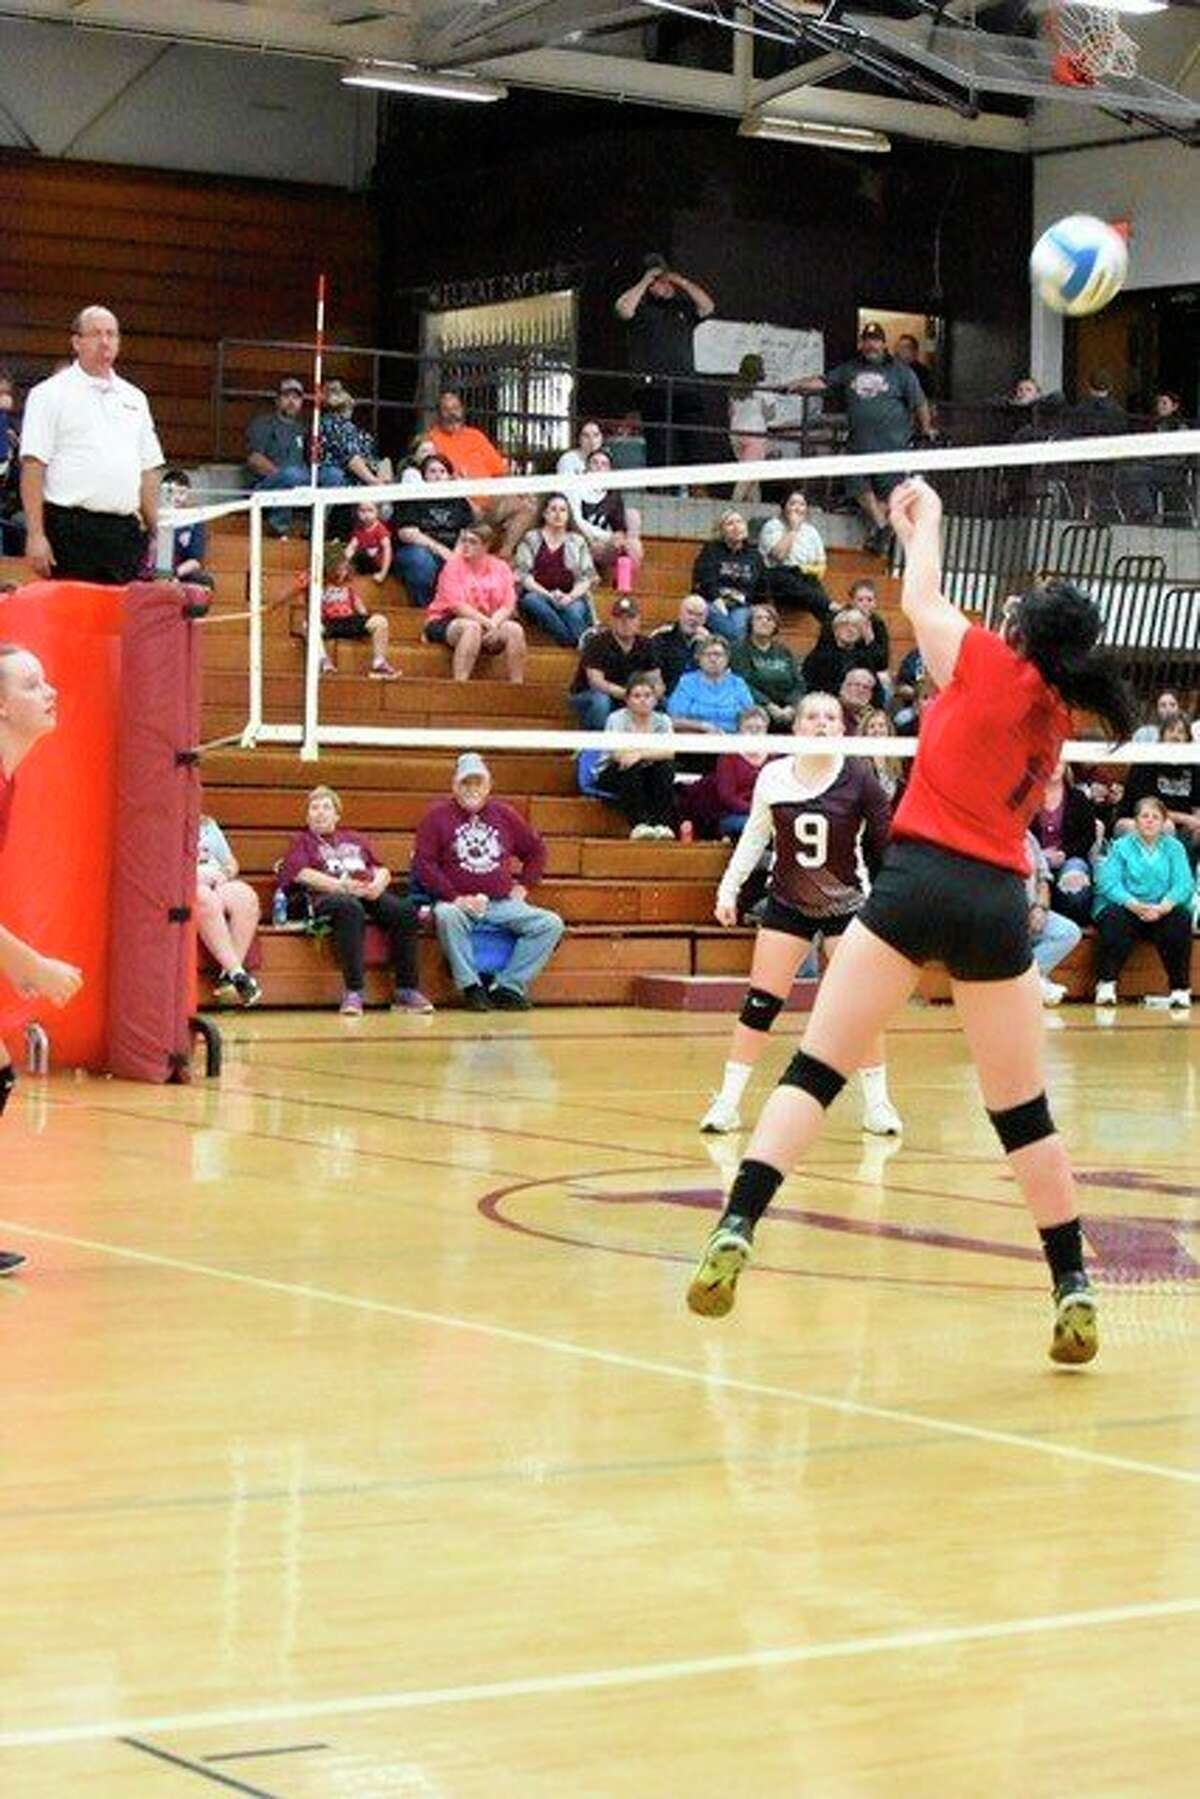 Owendale-Gagetown's Karlie Morrish bumps the ball over the net. (Carrie DeLaCruz/Courtesy Photo)